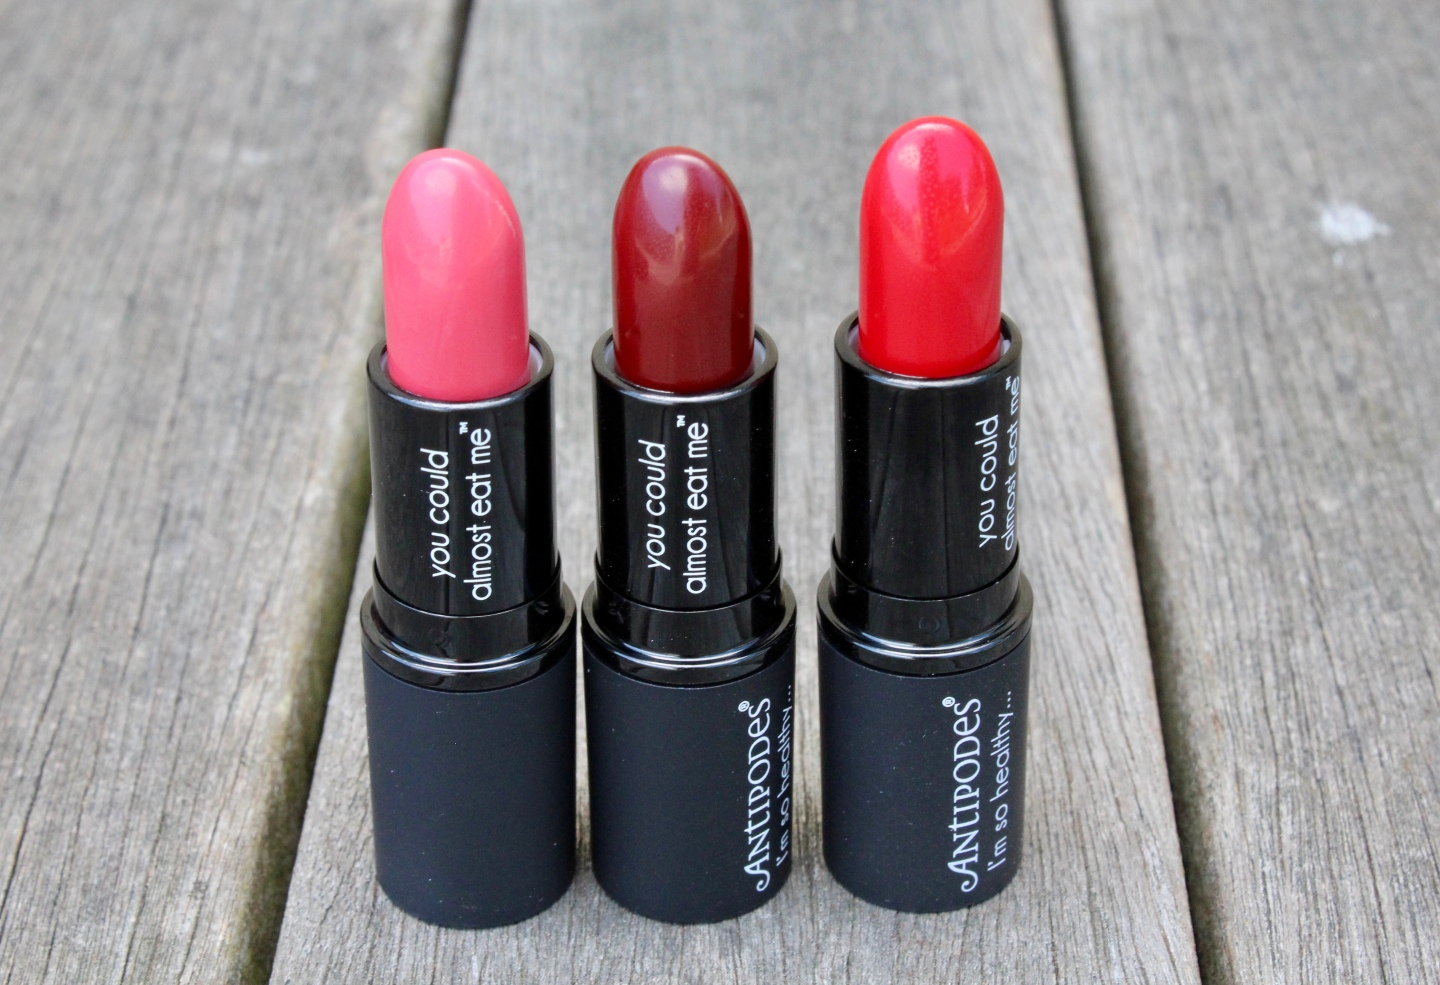 Antipodes Healthy Lipsticks